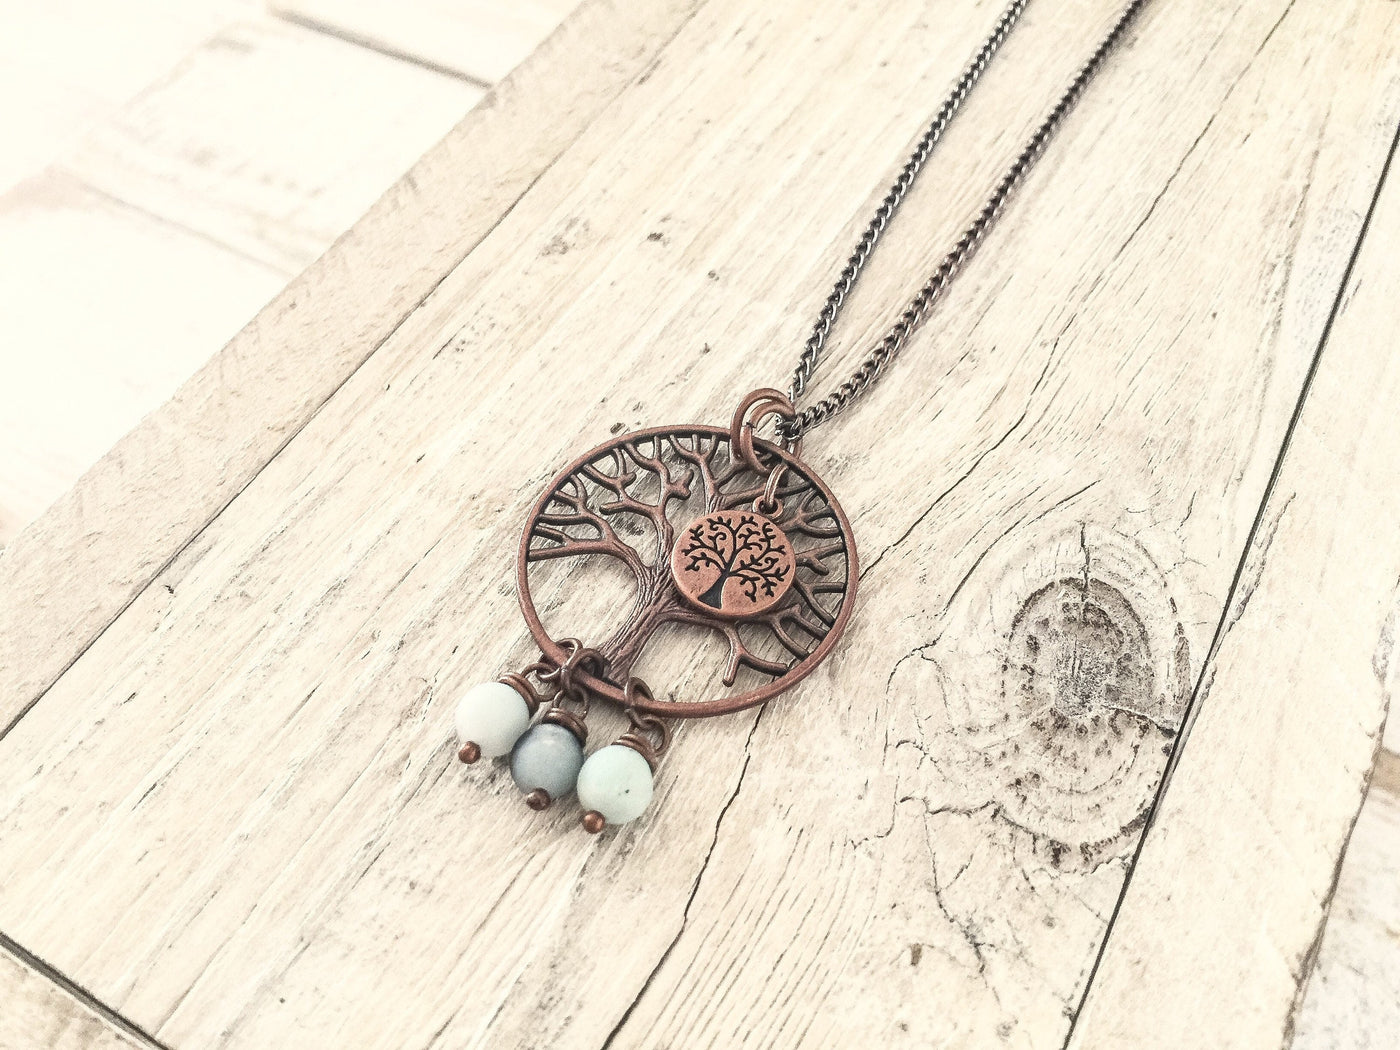 Tree of Life Necklace, Tree Lover  Necklace, Family Tree Necklace, Boho Tree Pendant, Mothers Gift, Spiritual Tree Necklace, N190